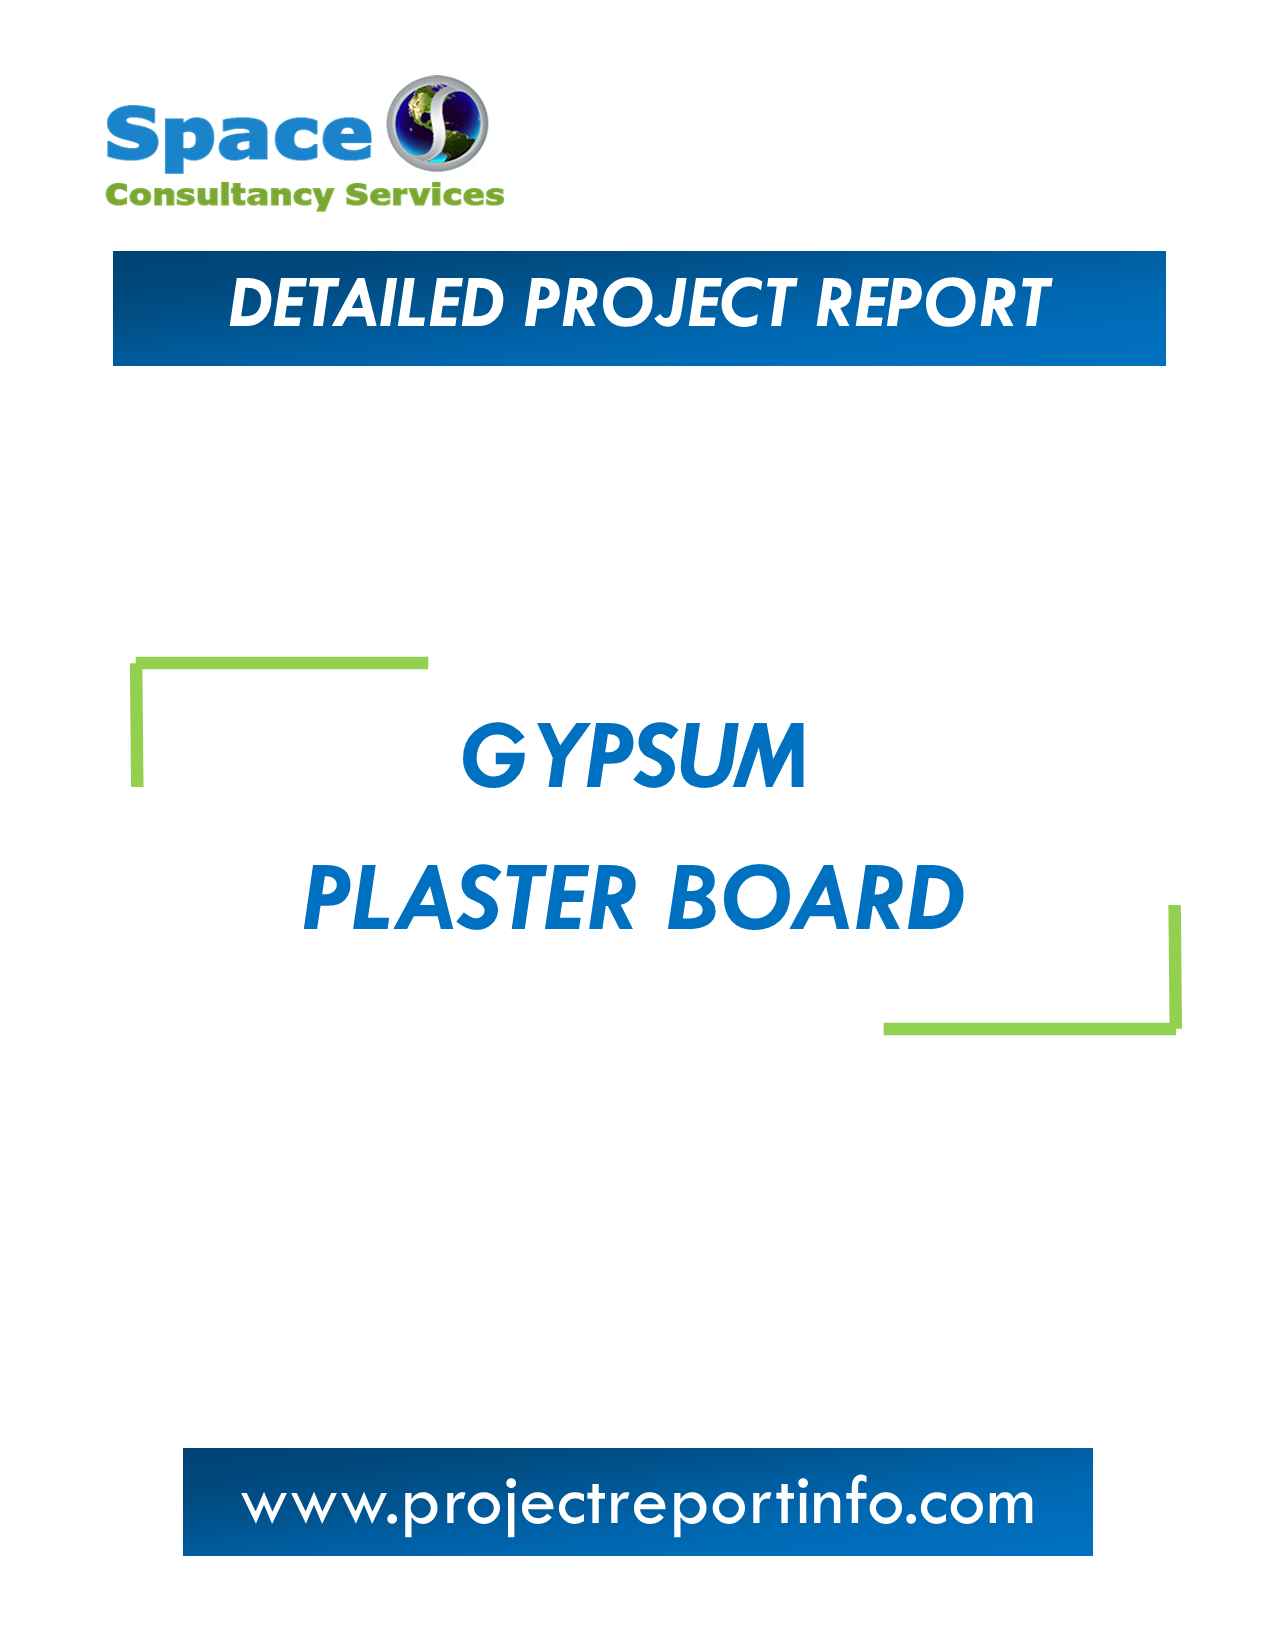 Project Report on Gypsum Plaster Board Manufacturing